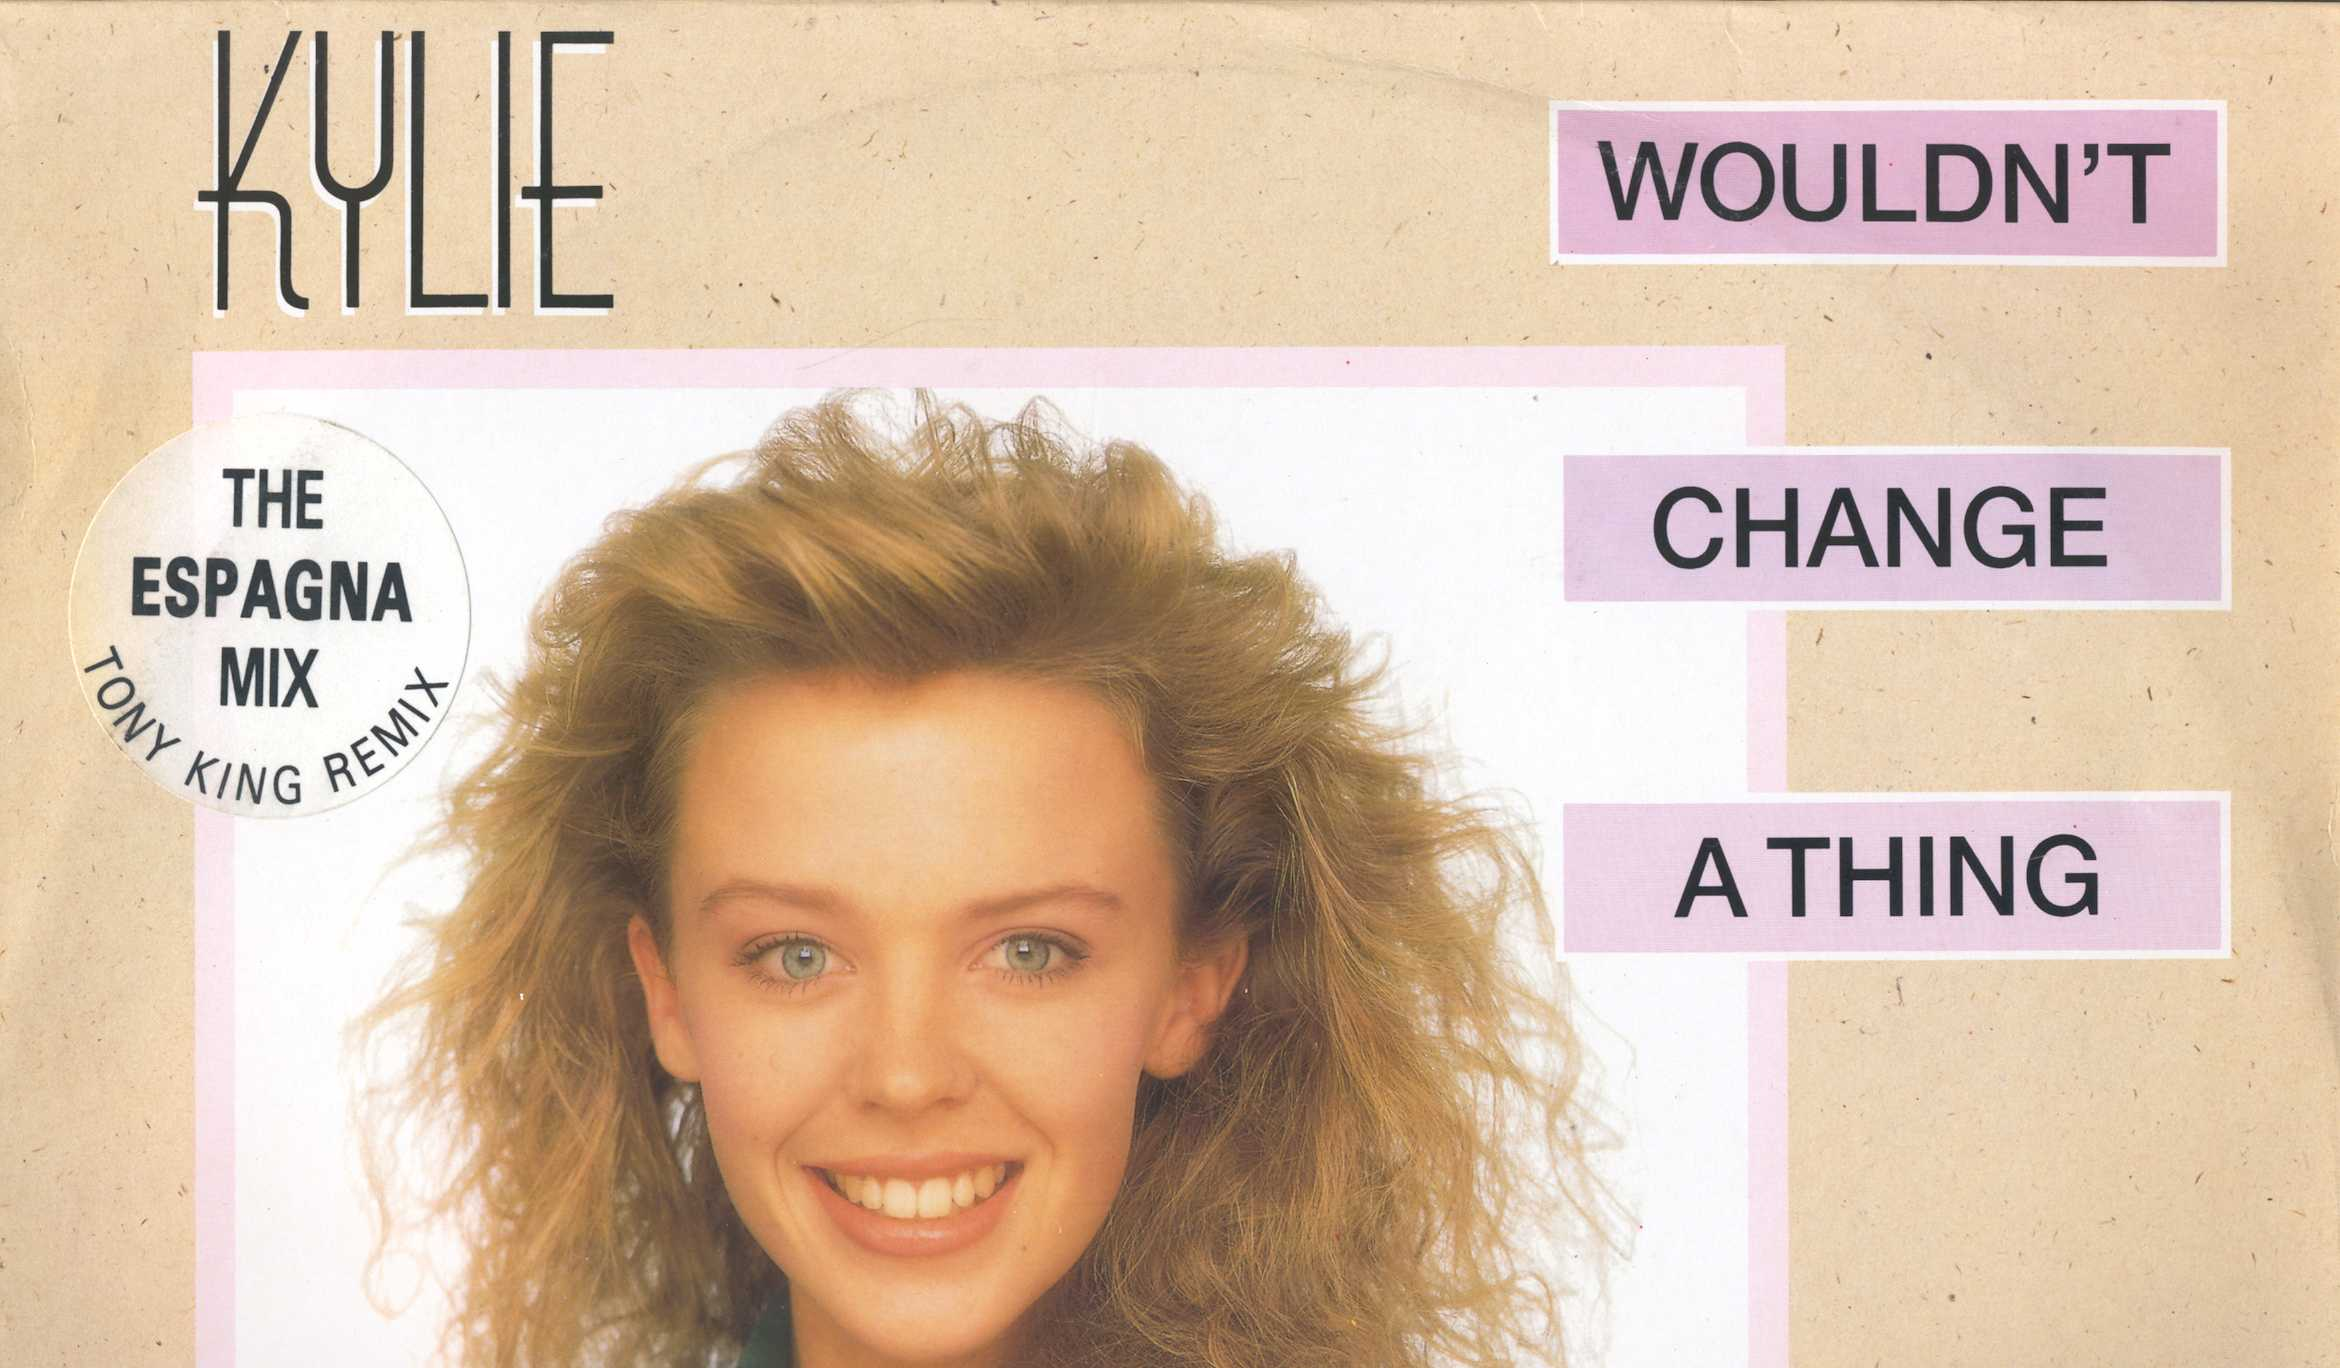 Kylie Minogue. Wouldn't Change A Thing